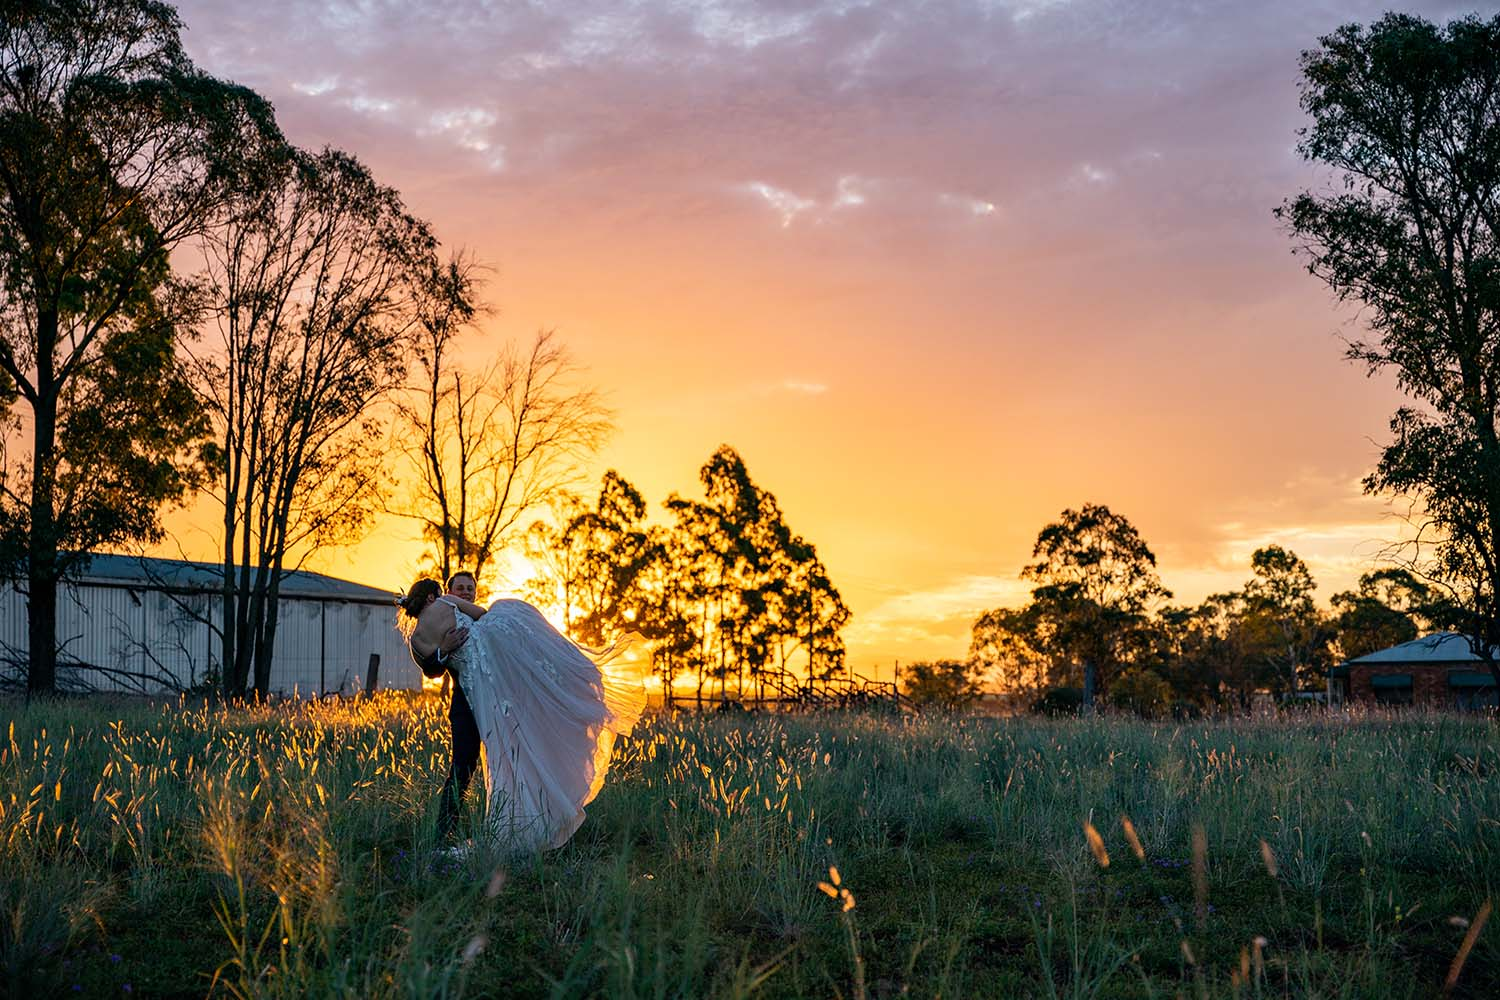 Wedding Photography - Sunset in the field